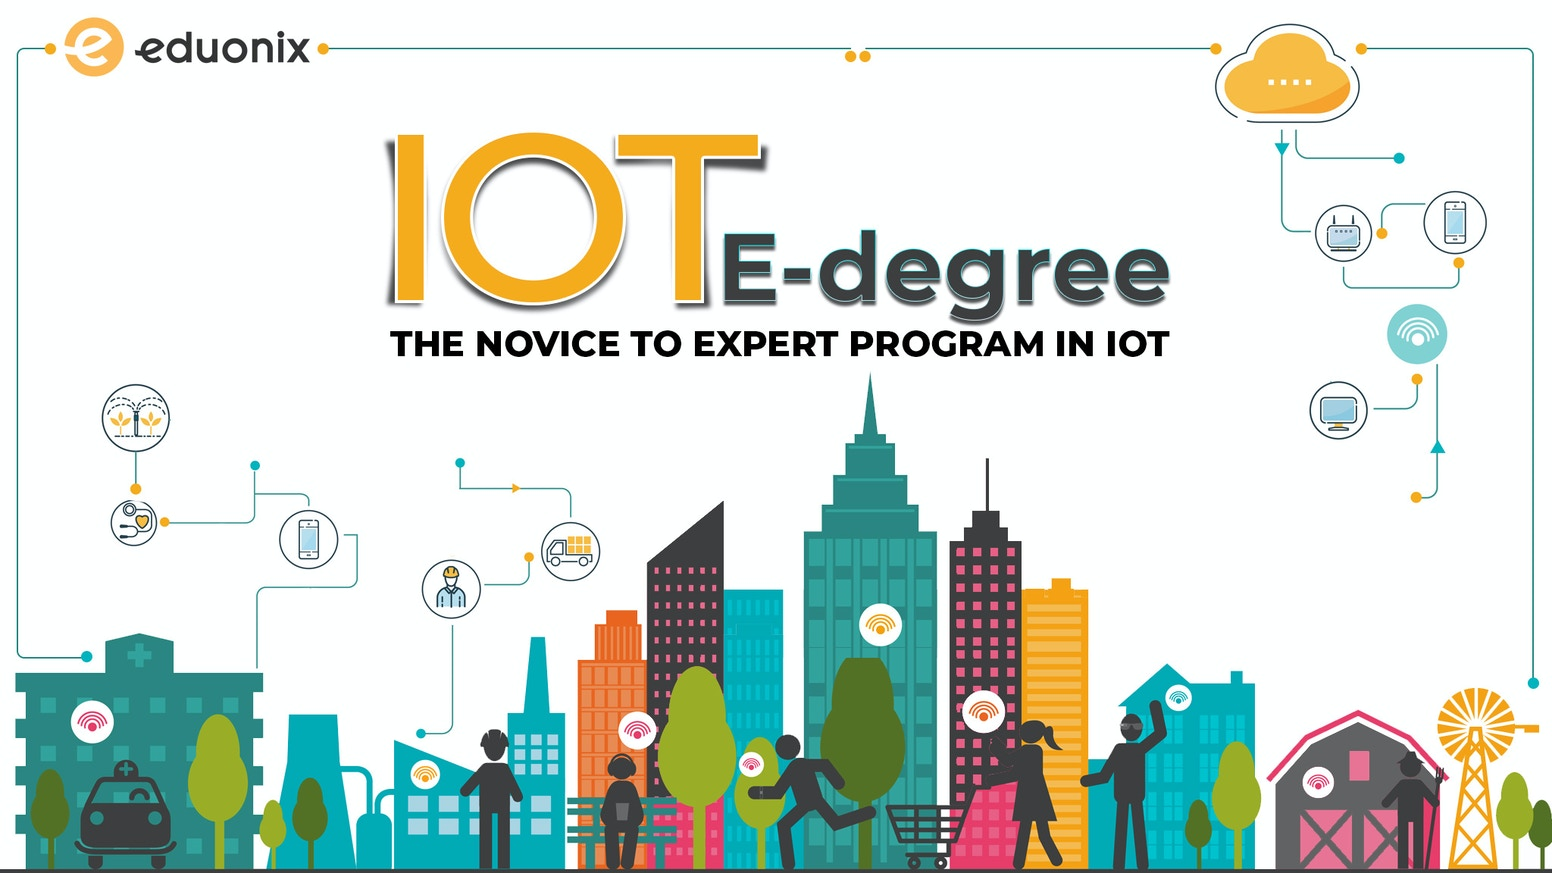 IoT E-degree - Learn Raspberry Pi, Arduino, GCP and More